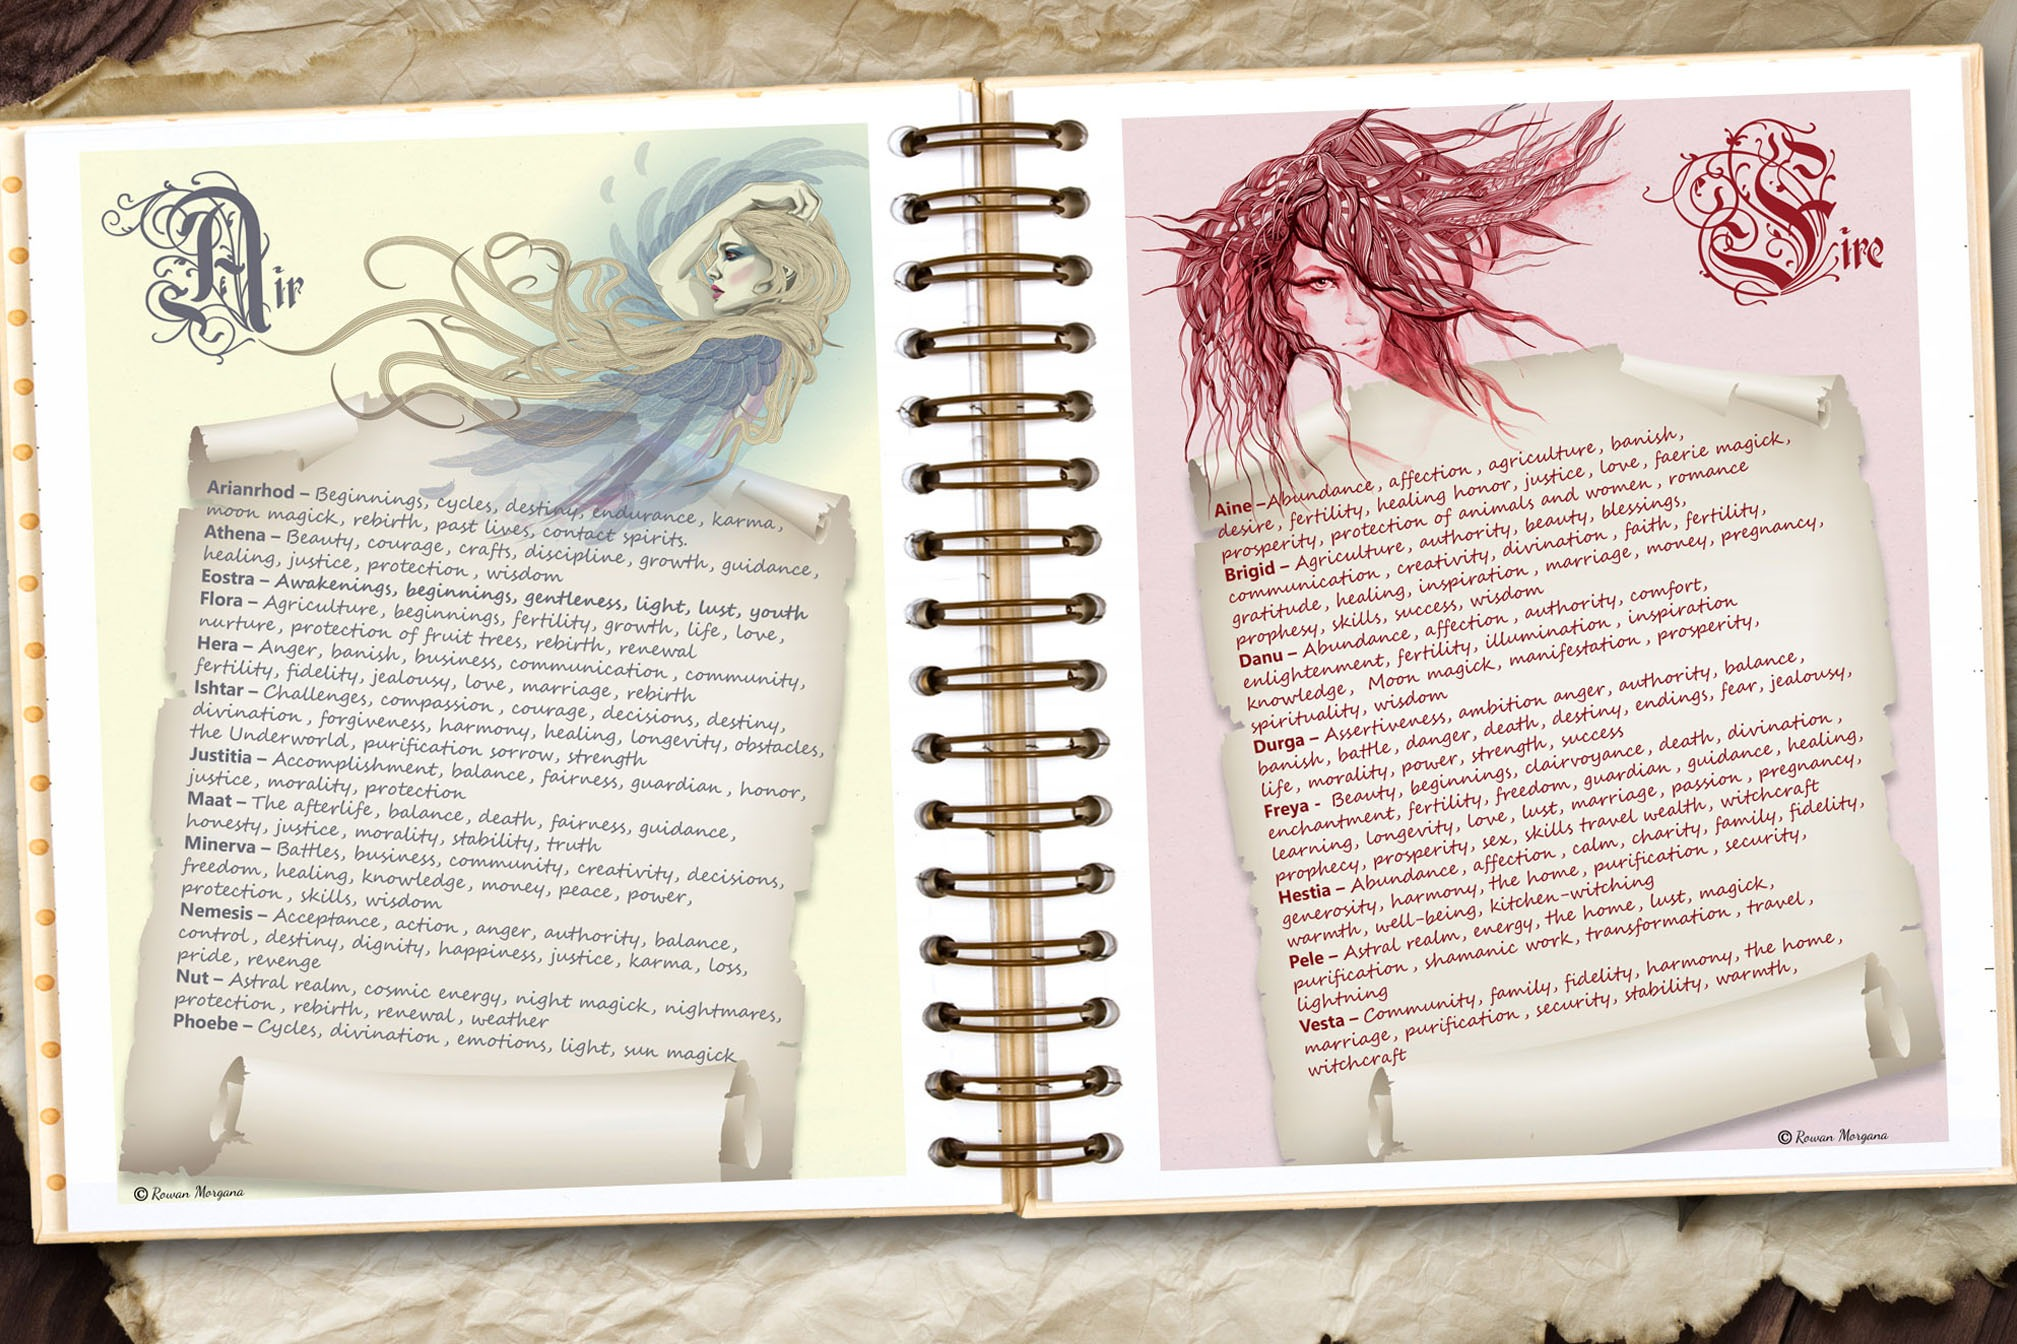 The GODDESSES of EARTH, AIR, FIRE & WATER - 4 pages